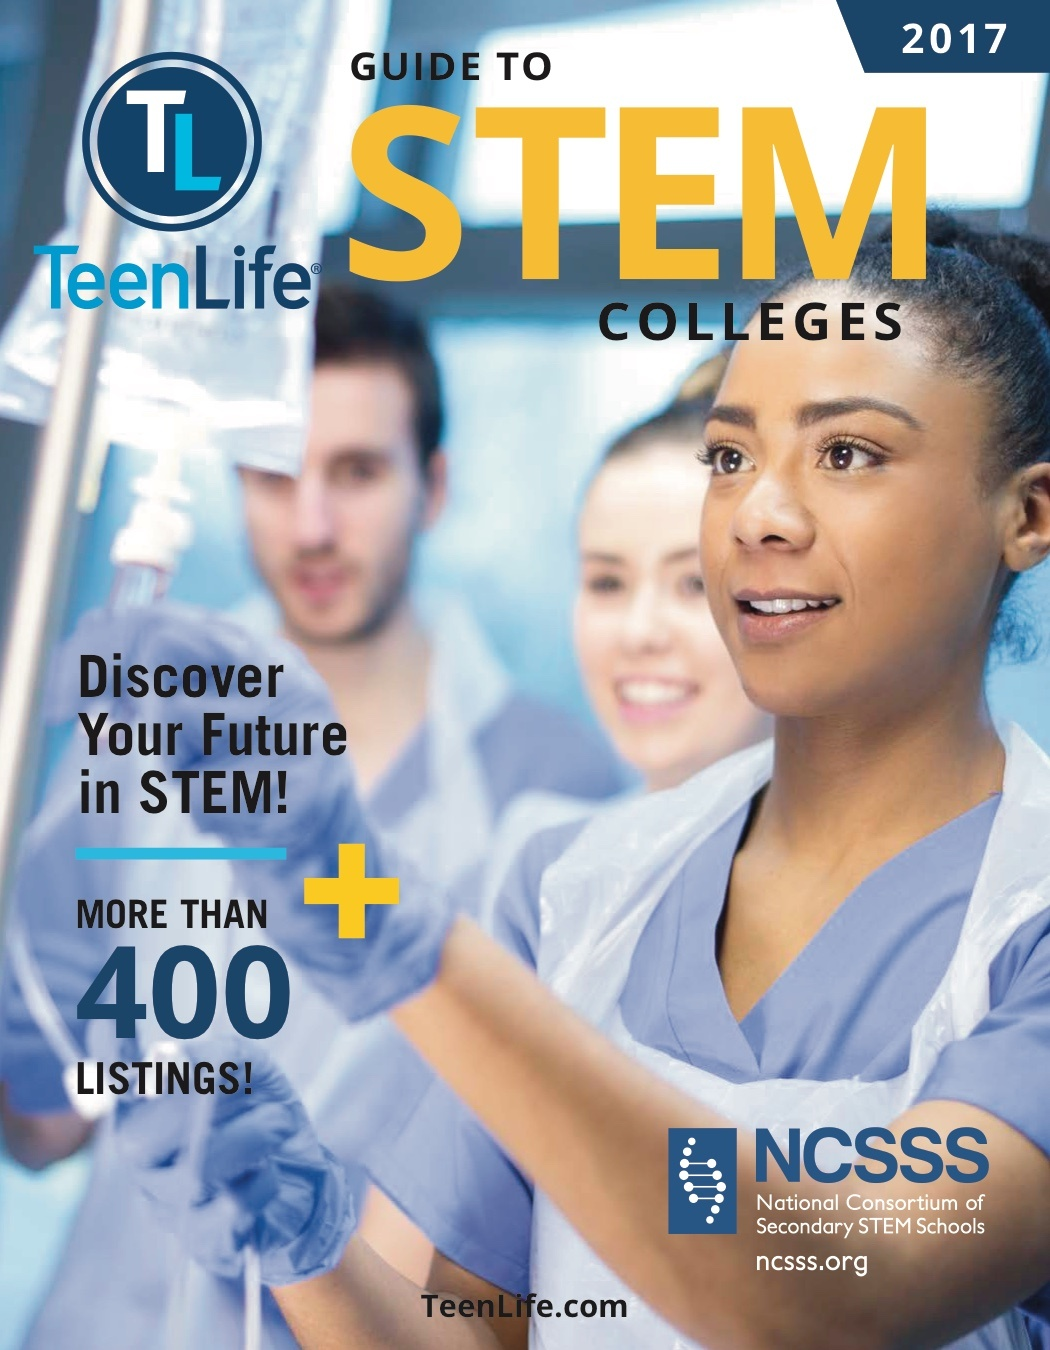 NCSSS Guide to STEM Colleges & Programs